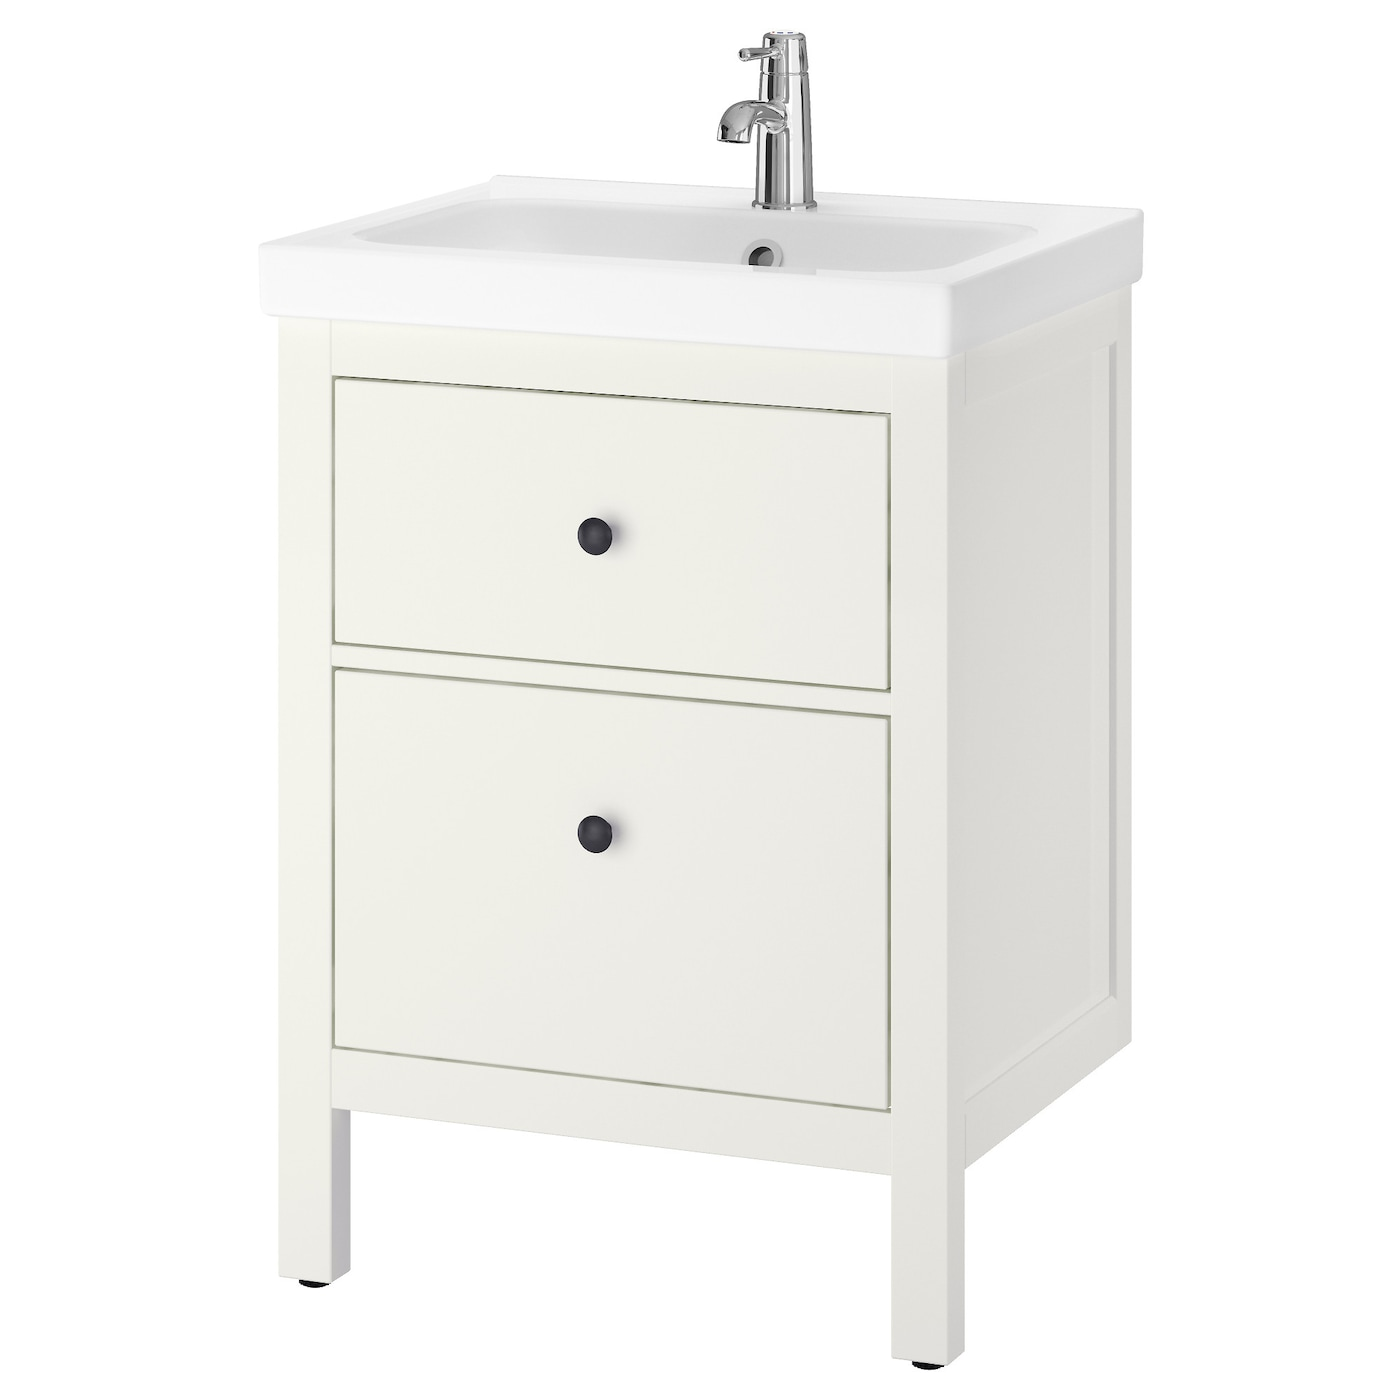 vanity lowes sink show shop attractive tops regarding bathroom com with vanities at double sinks throughout me awesome cabinet